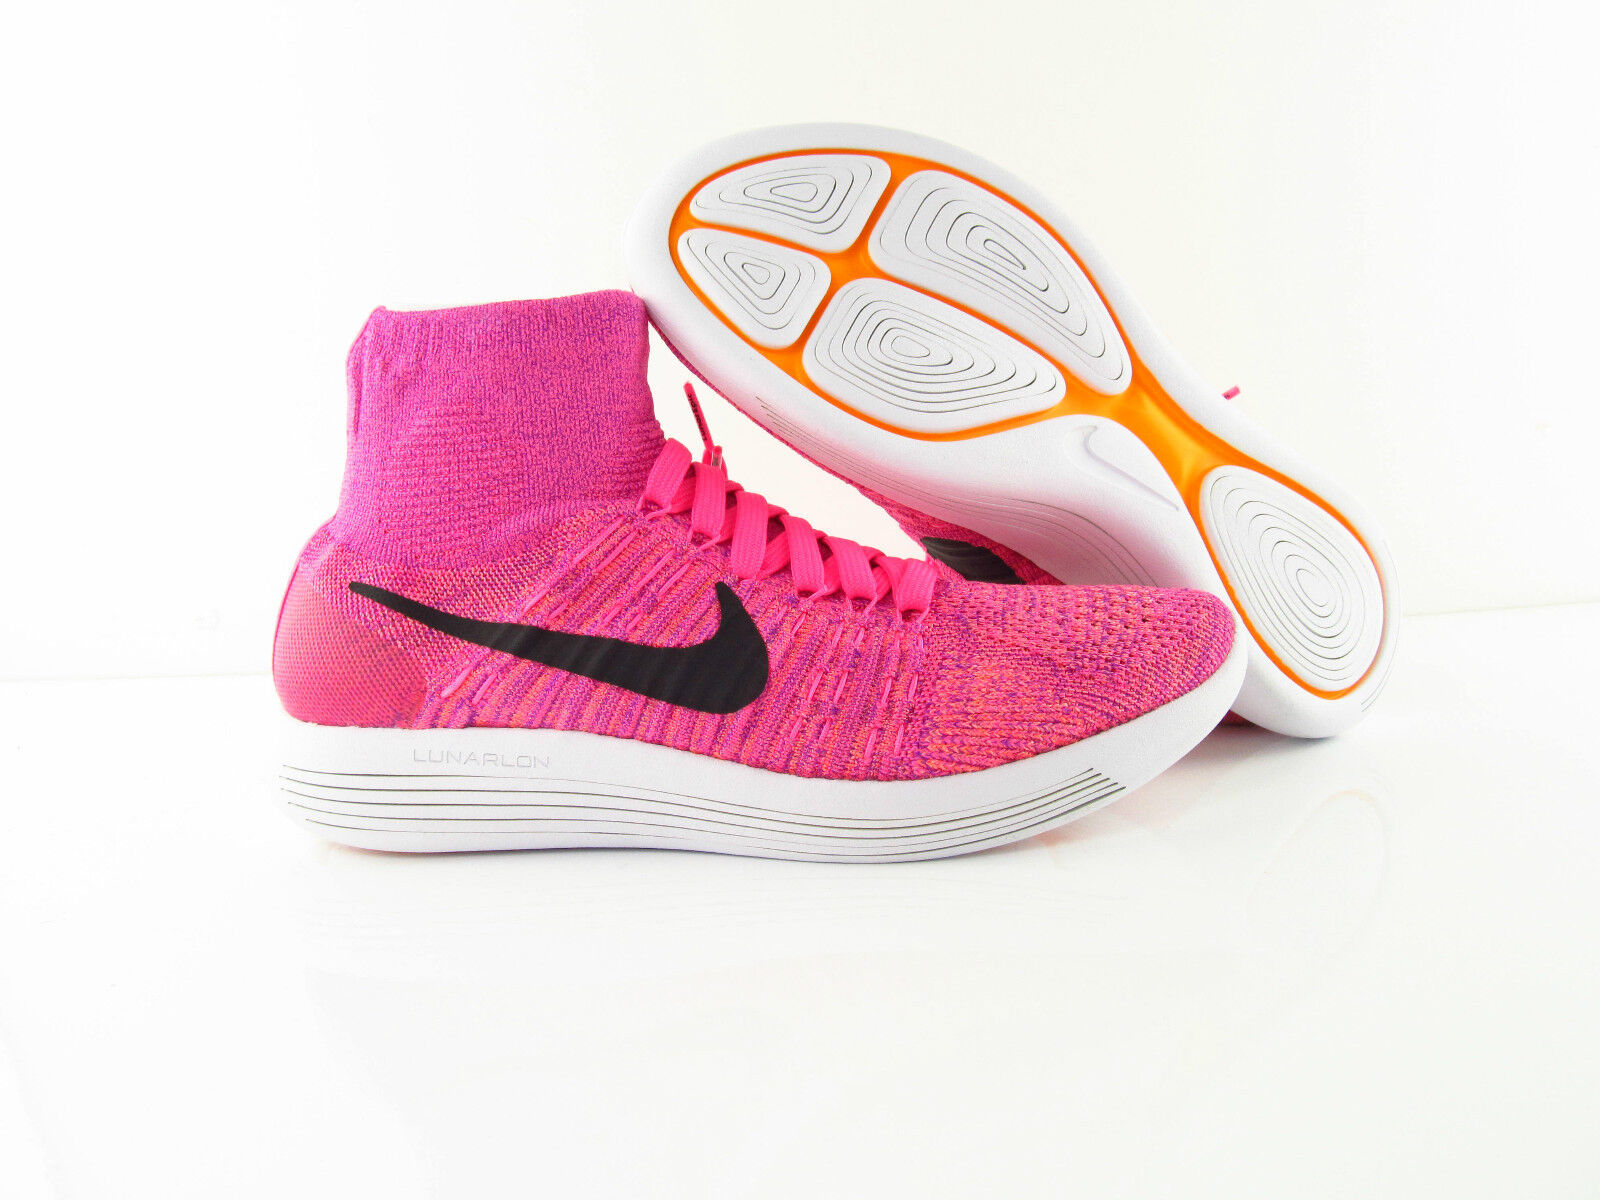 Nike Wmns Lunarepic Flyknit New Pink Pow Rosa Running New Flyknit US_8.5 UK_6 Eur 40 3a5023